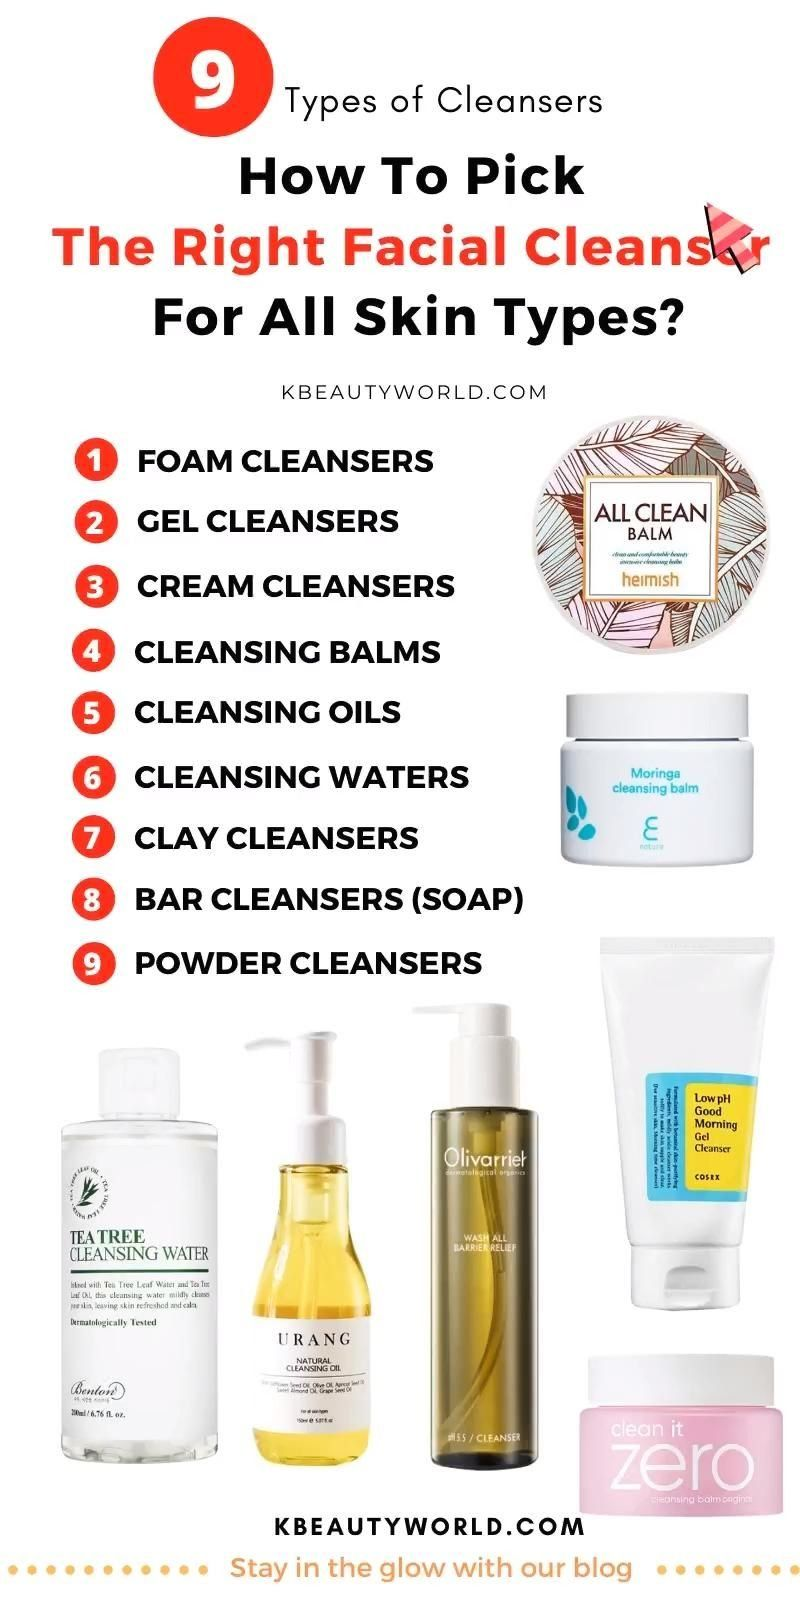 How To Find The Best Facial Cleanser For Your Skin Types 1000 In 2020 Best Facial Cleanser Oily Skin Care Facial Cleanser